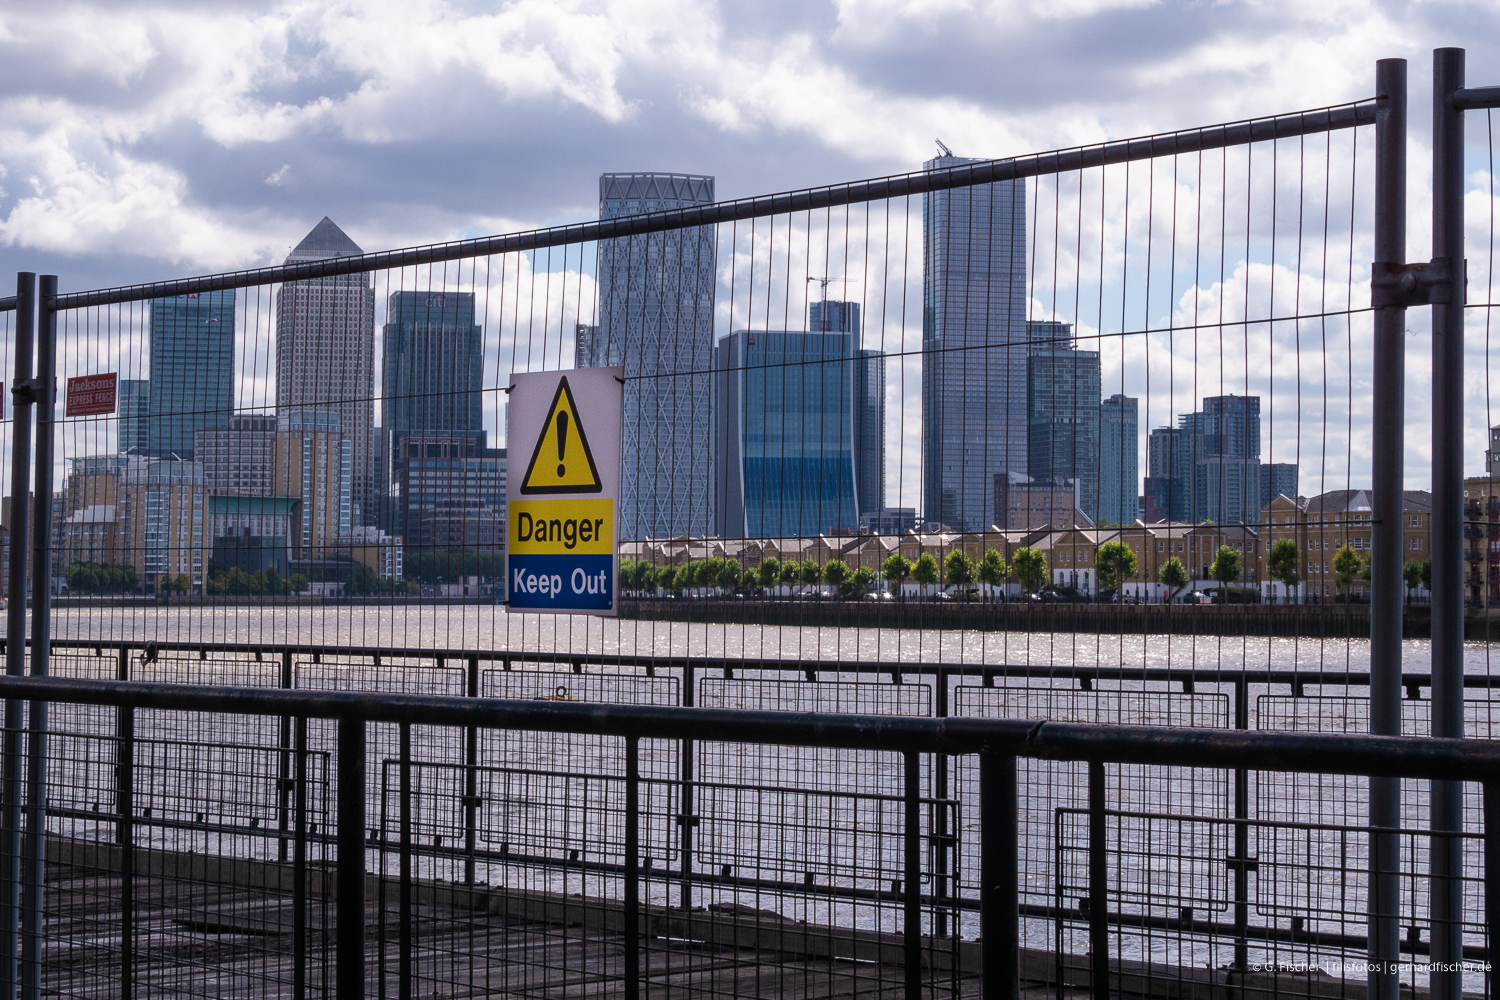 Banks (Canary Wharf in London): Hint for Investors?